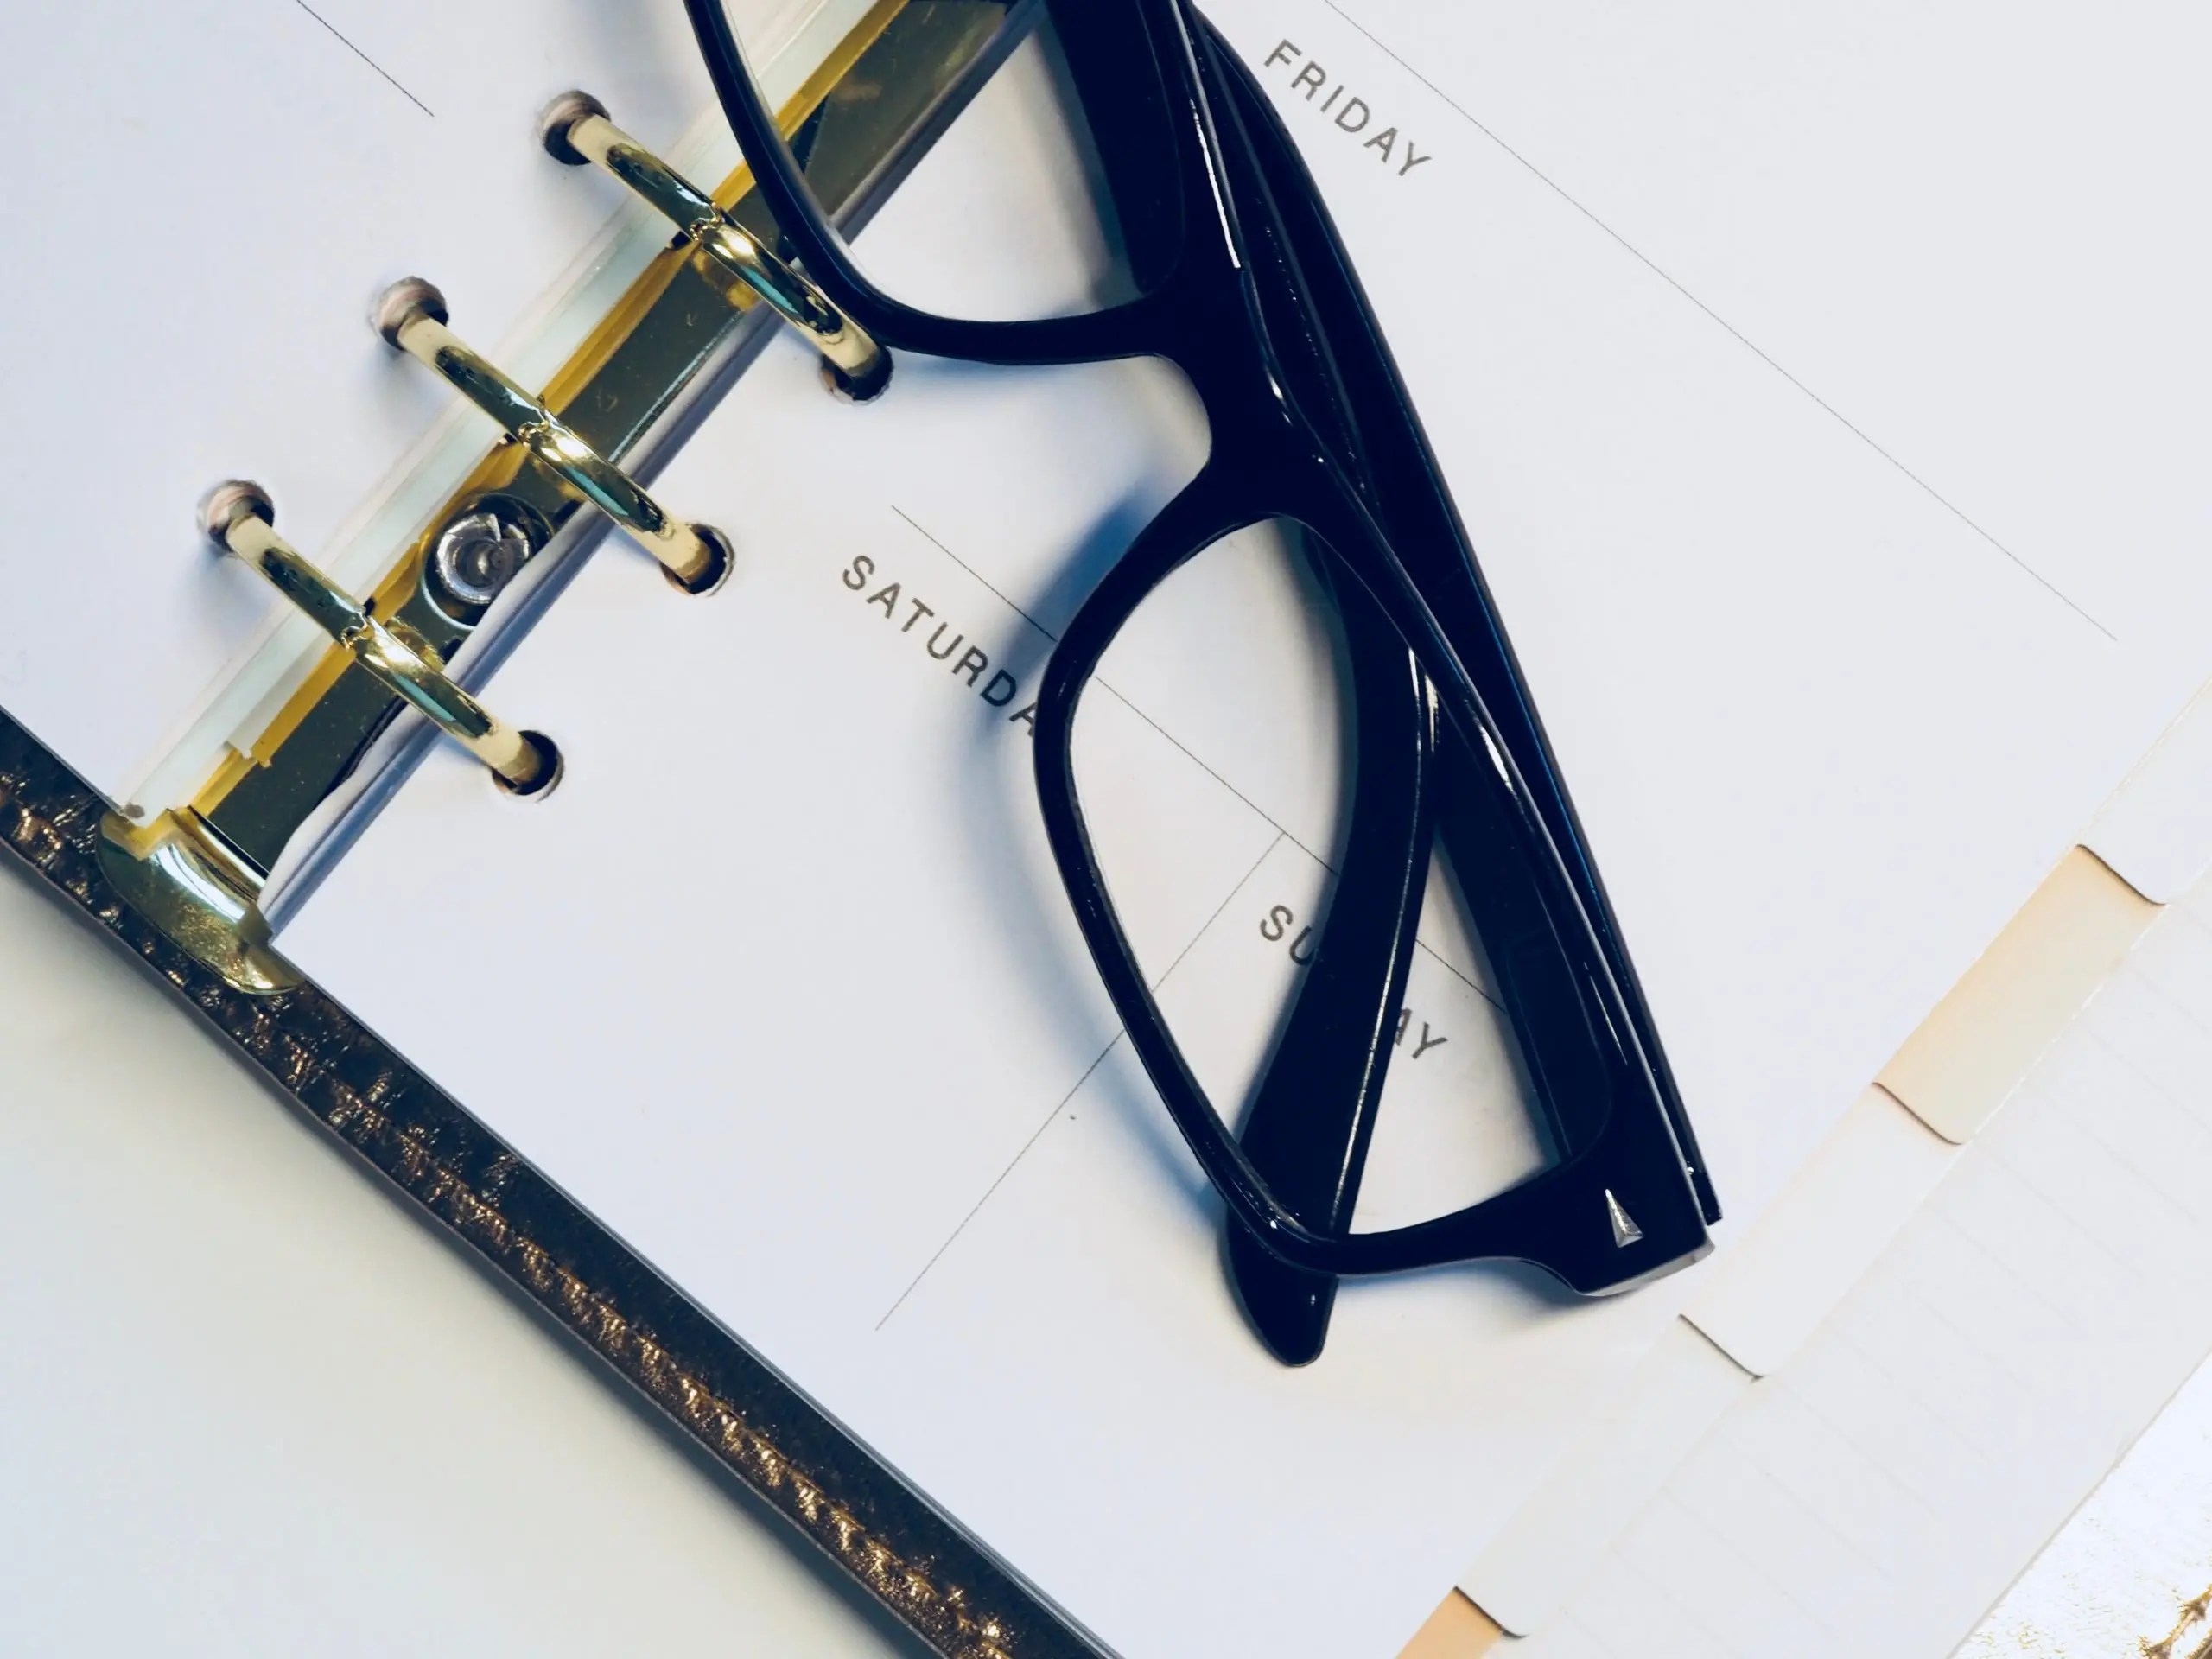 Planner with eyeglasses resting on top